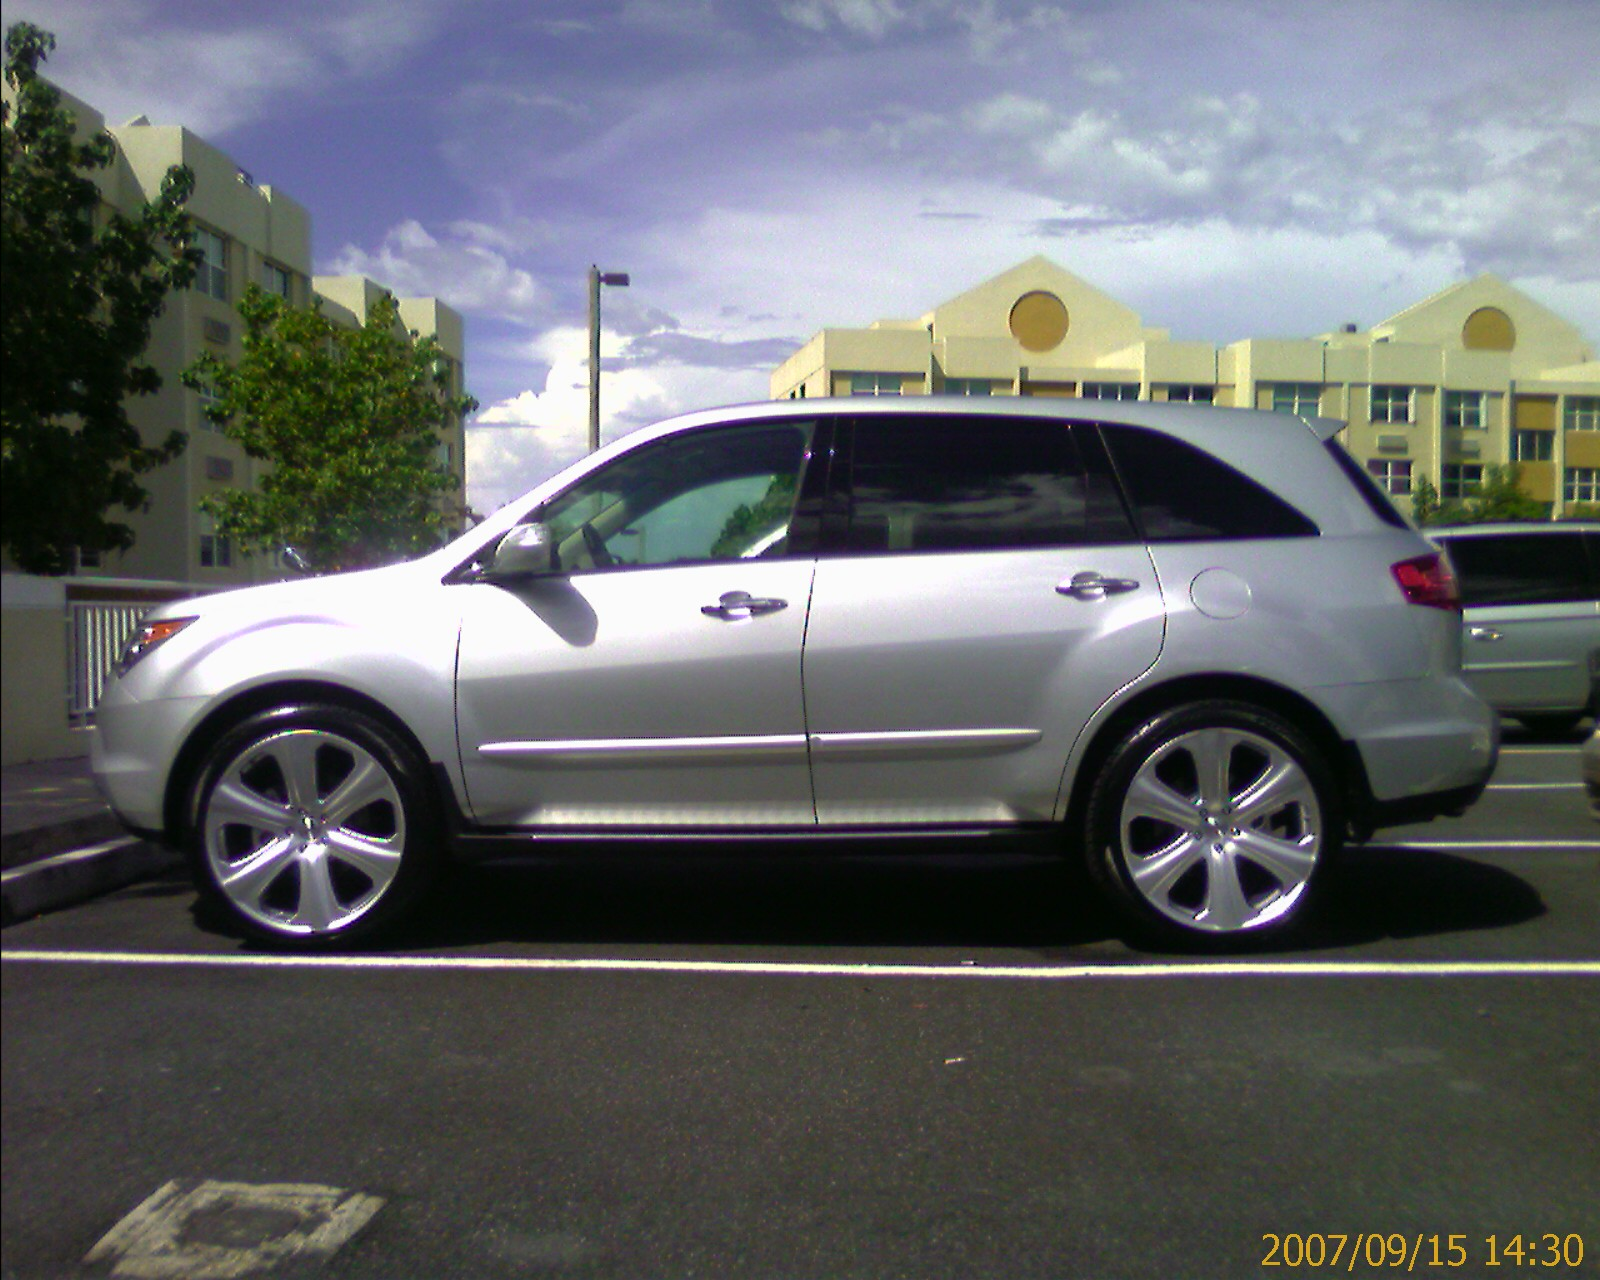 Acura MDX Custom Wheels X ET Tire Size R X ET - Acura mdx wheels